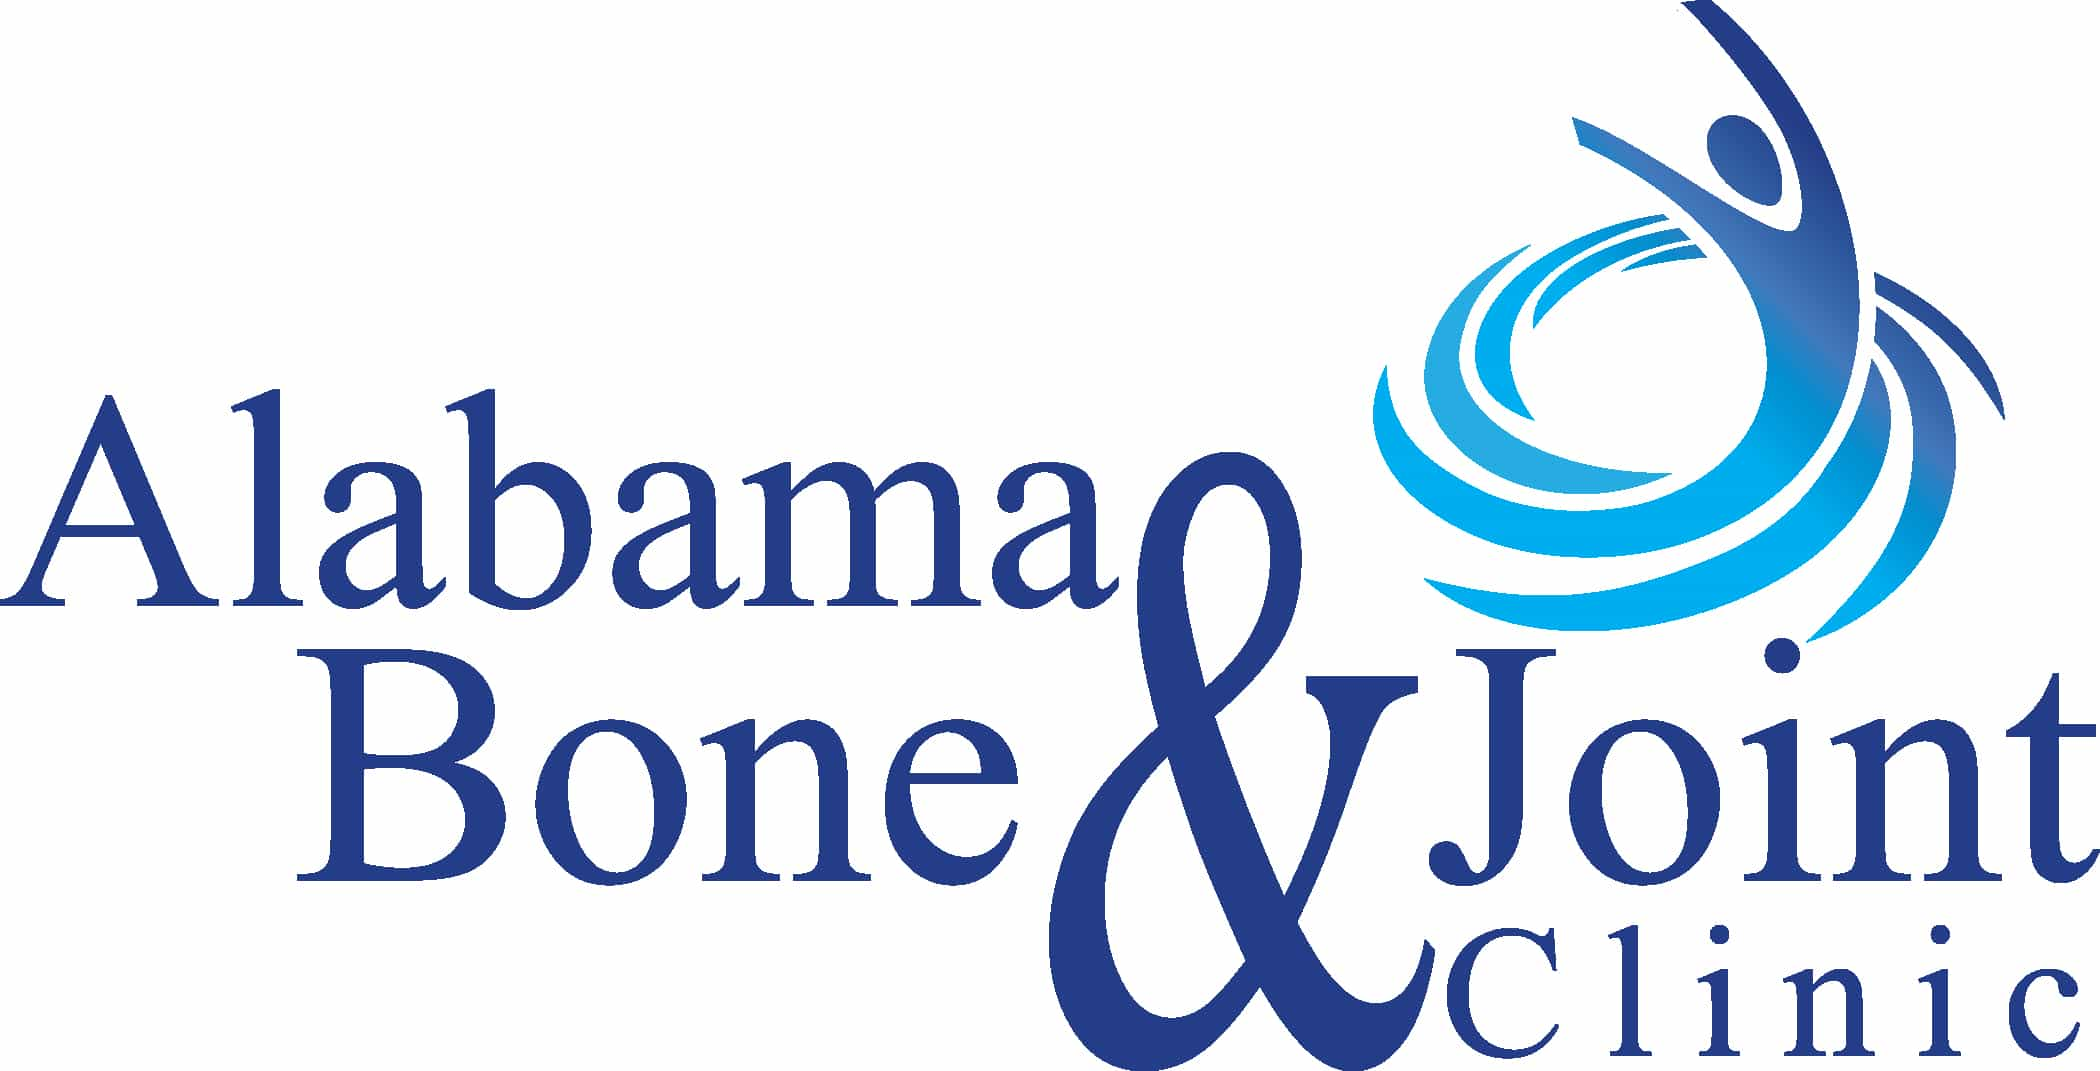 Alabama Bone & Joint Clinic